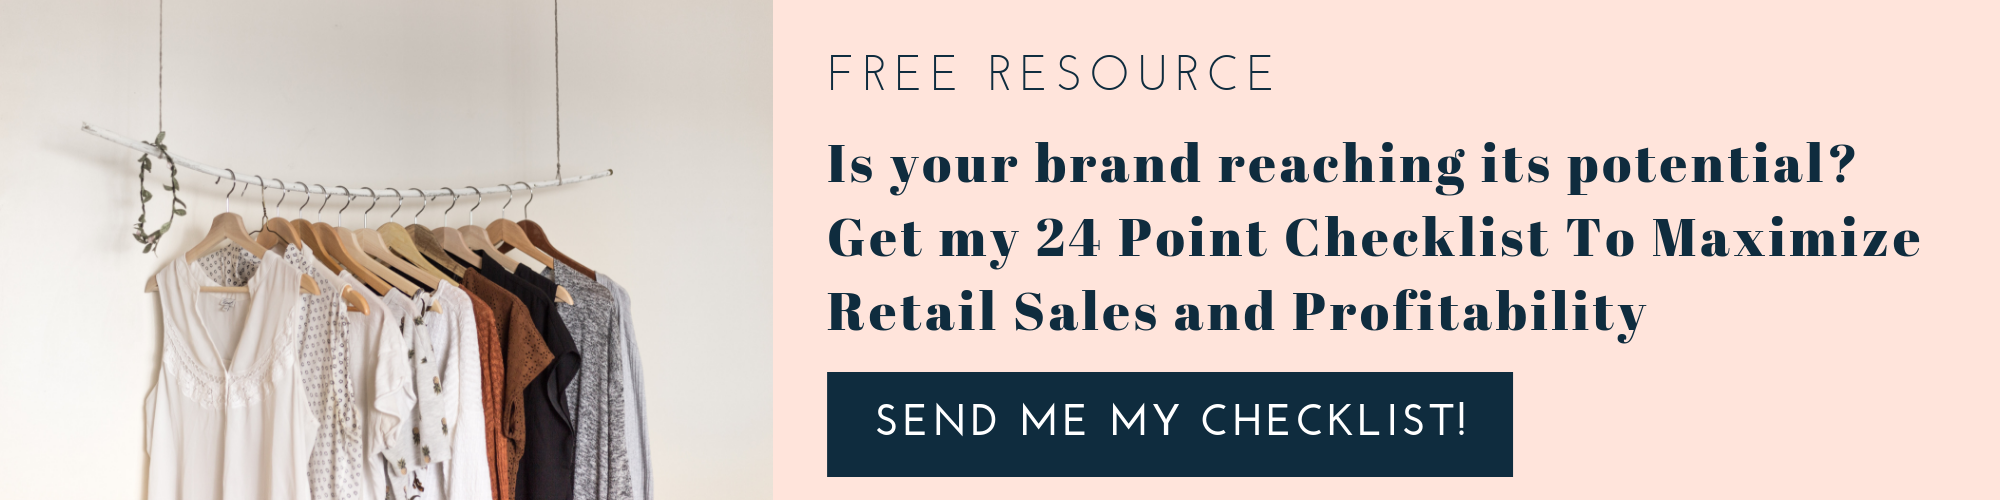 fashion brand 24 point checklist to maximize retail sales and profitability